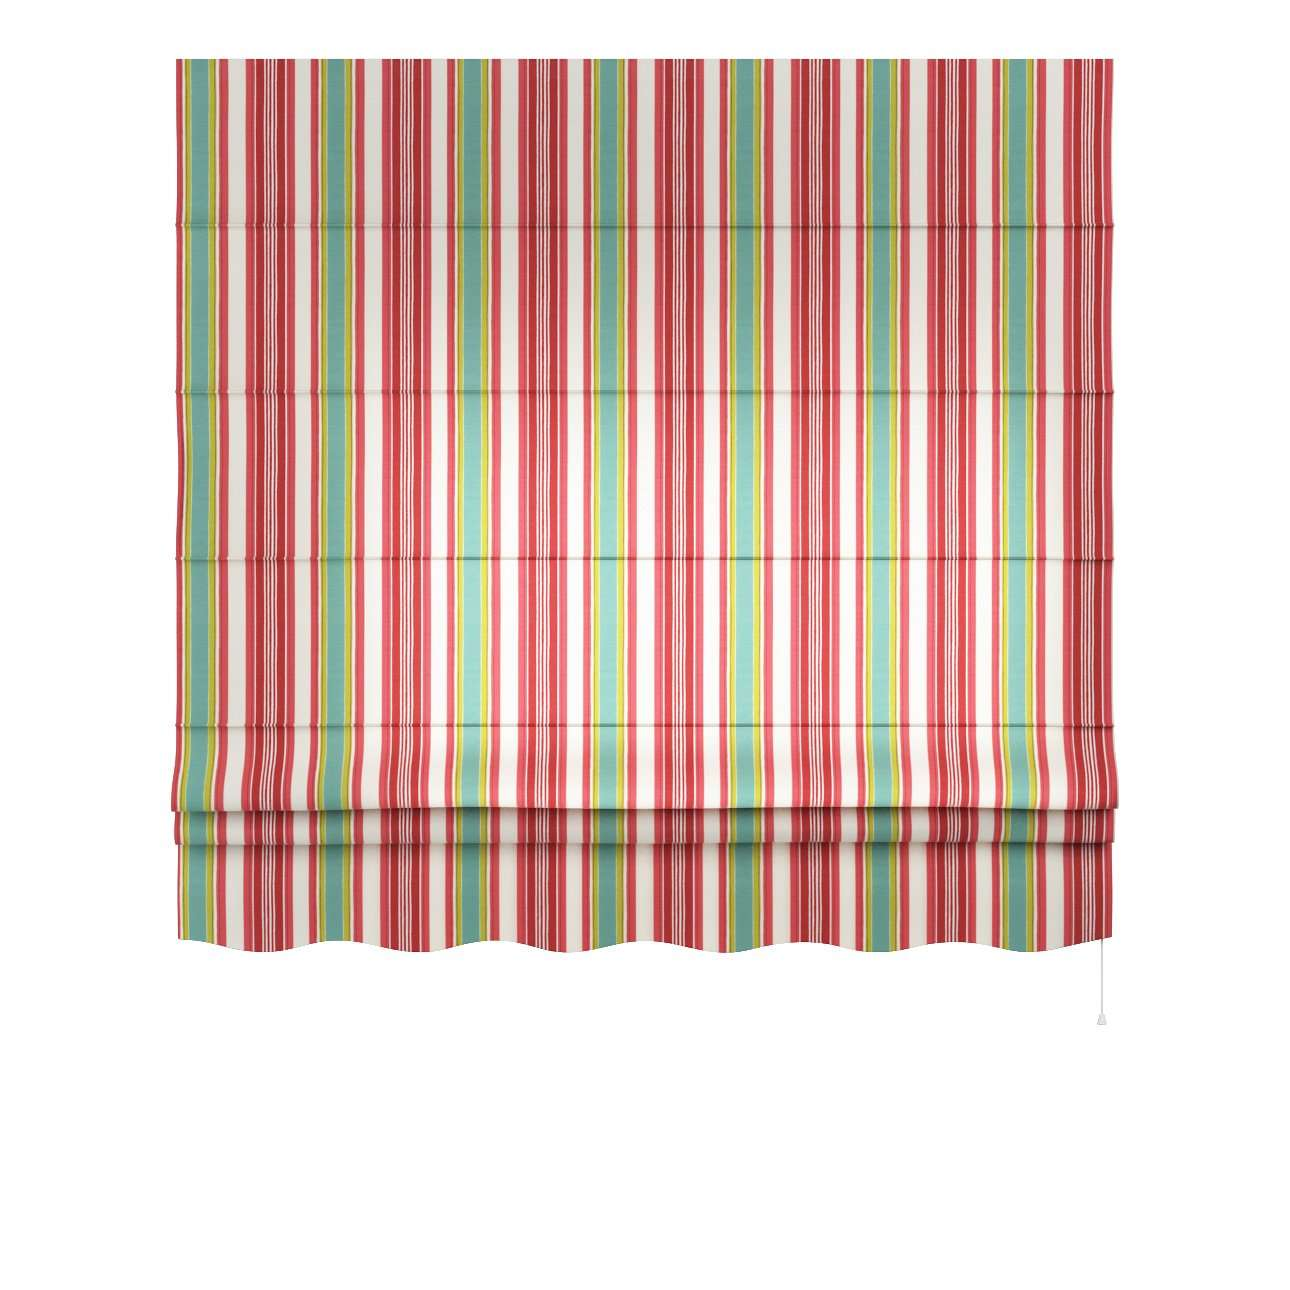 Florence roman blind  80 x 170 cm (31.5 x 67 inch) in collection Londres, fabric: 122-01